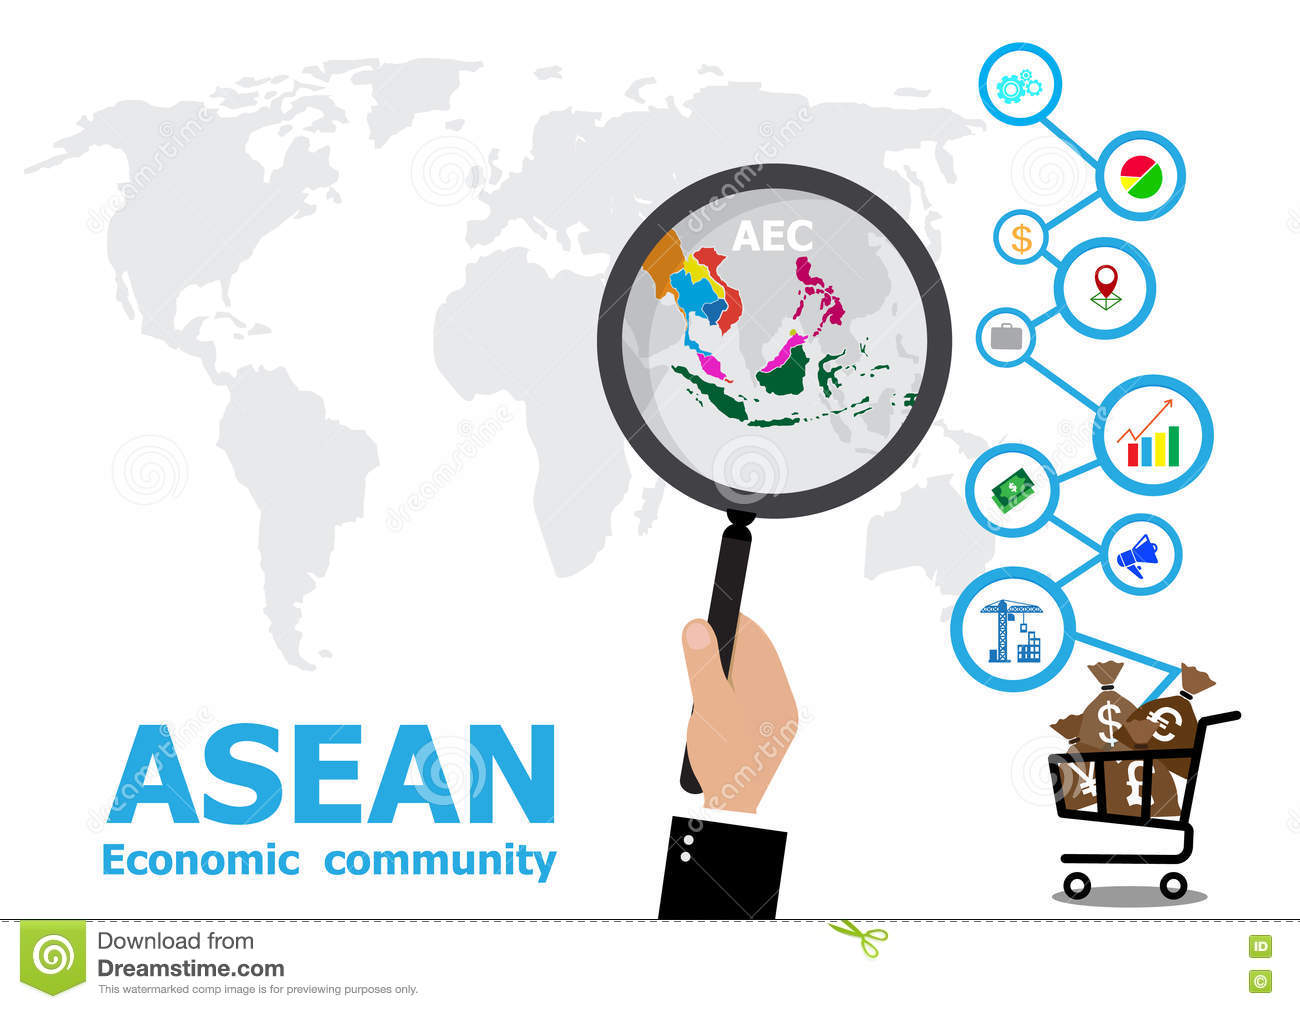 the effects of asean economic community The impact of asean transition to asean economic community on myanmar economy - free download as pdf file (pdf), text file (txt) or read online for free.